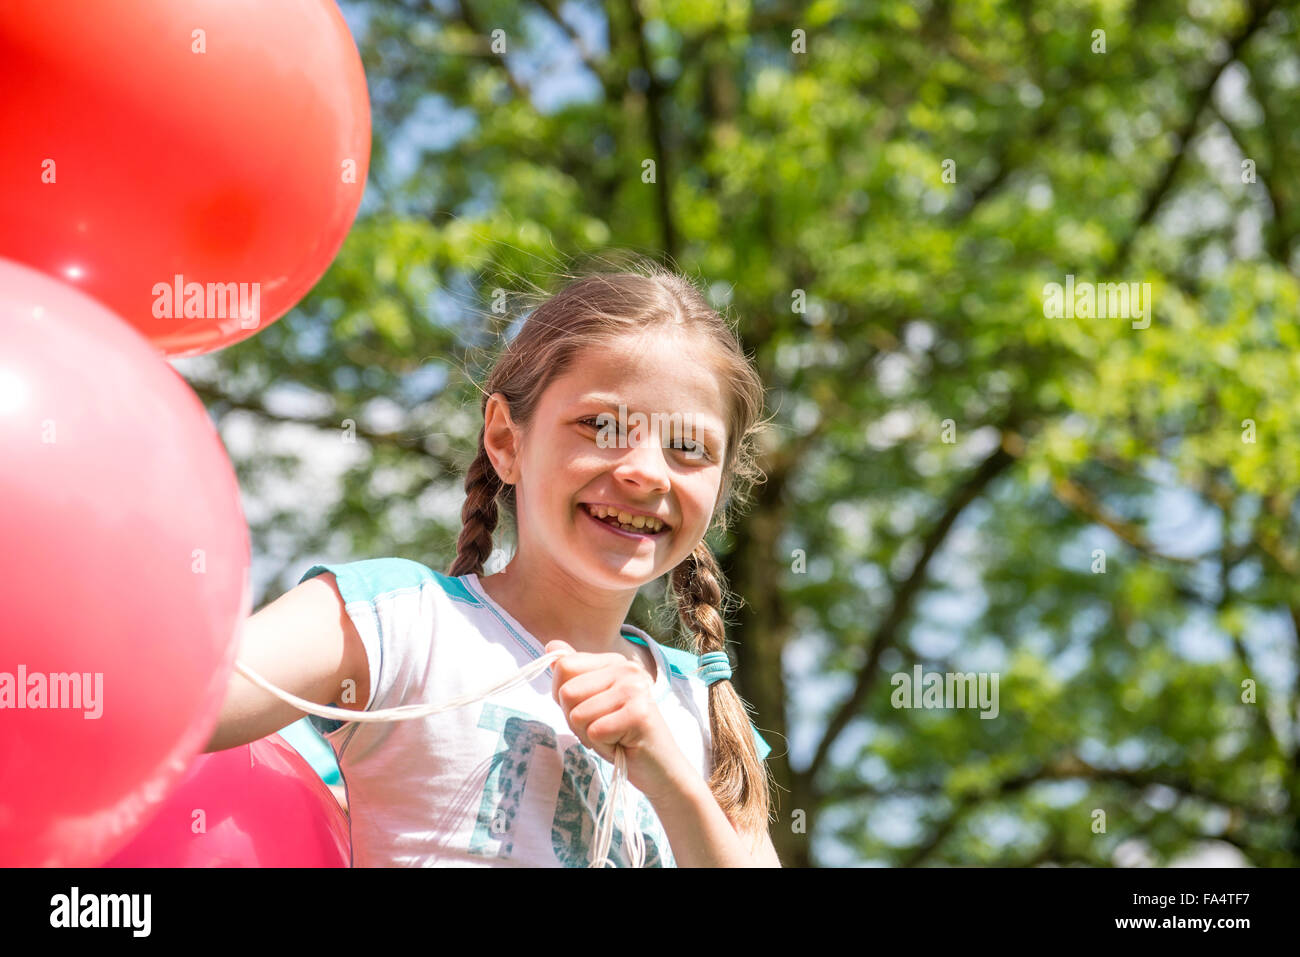 Portrait of a smiling girl holding red balloons, Munich, Bavaria, Germany - Stock Image